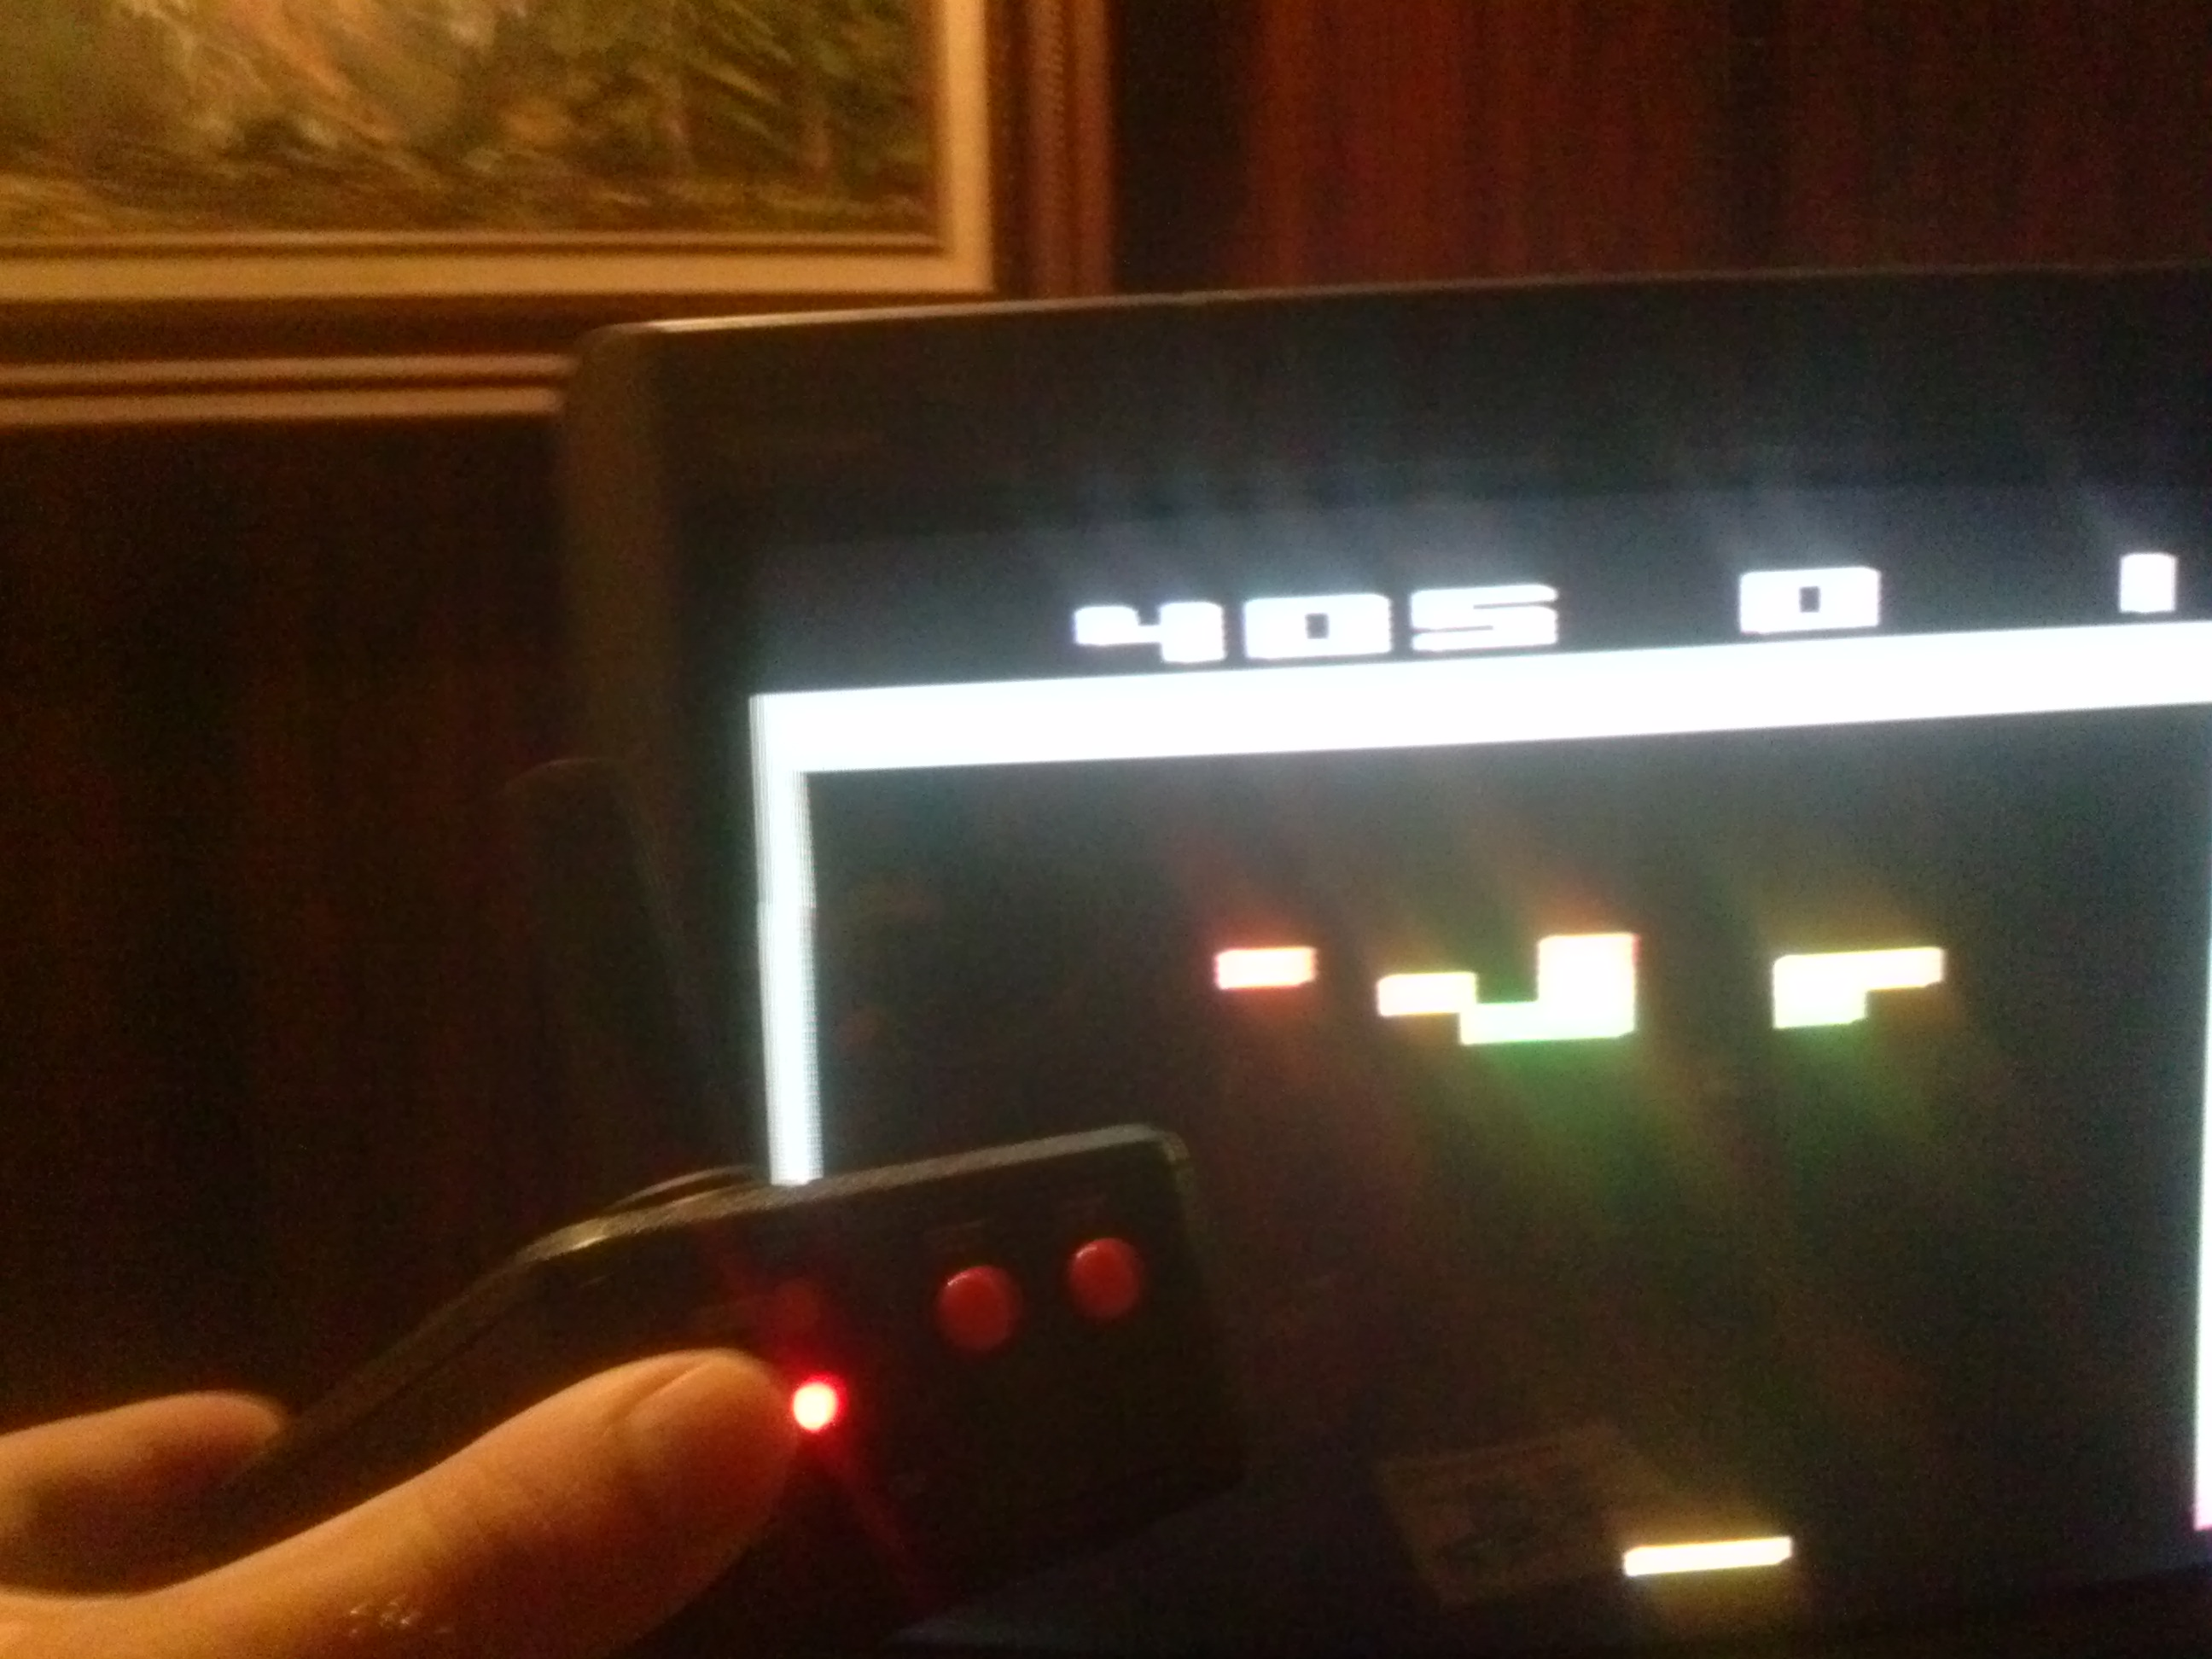 thedarkbanshee: Breakout (Jakks Pacific Atari TV Joystick) 405 points on 2014-09-09 12:26:36